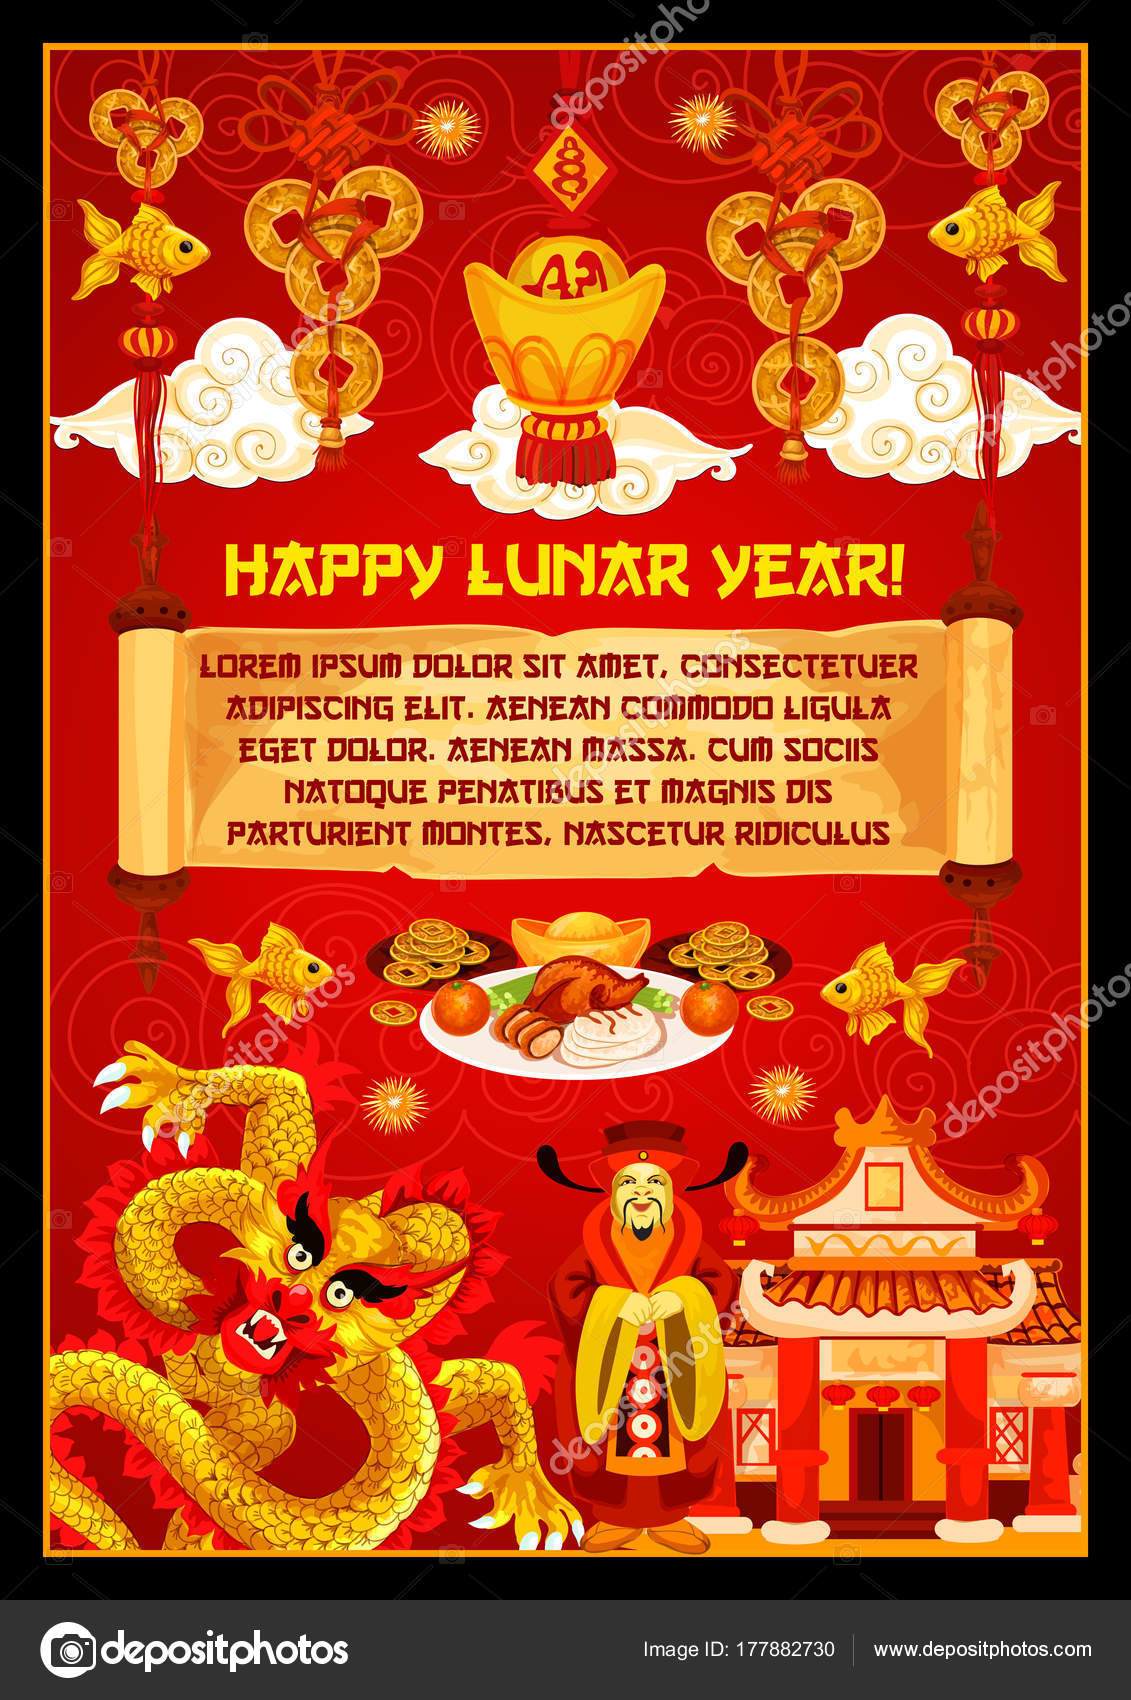 Chinese new year banner with god of prosperity stock vector happy lunar year greeting card for chinese new year celebration oriental spring festival pagoda dragon and god of wealth banner adorned by lucky coin m4hsunfo